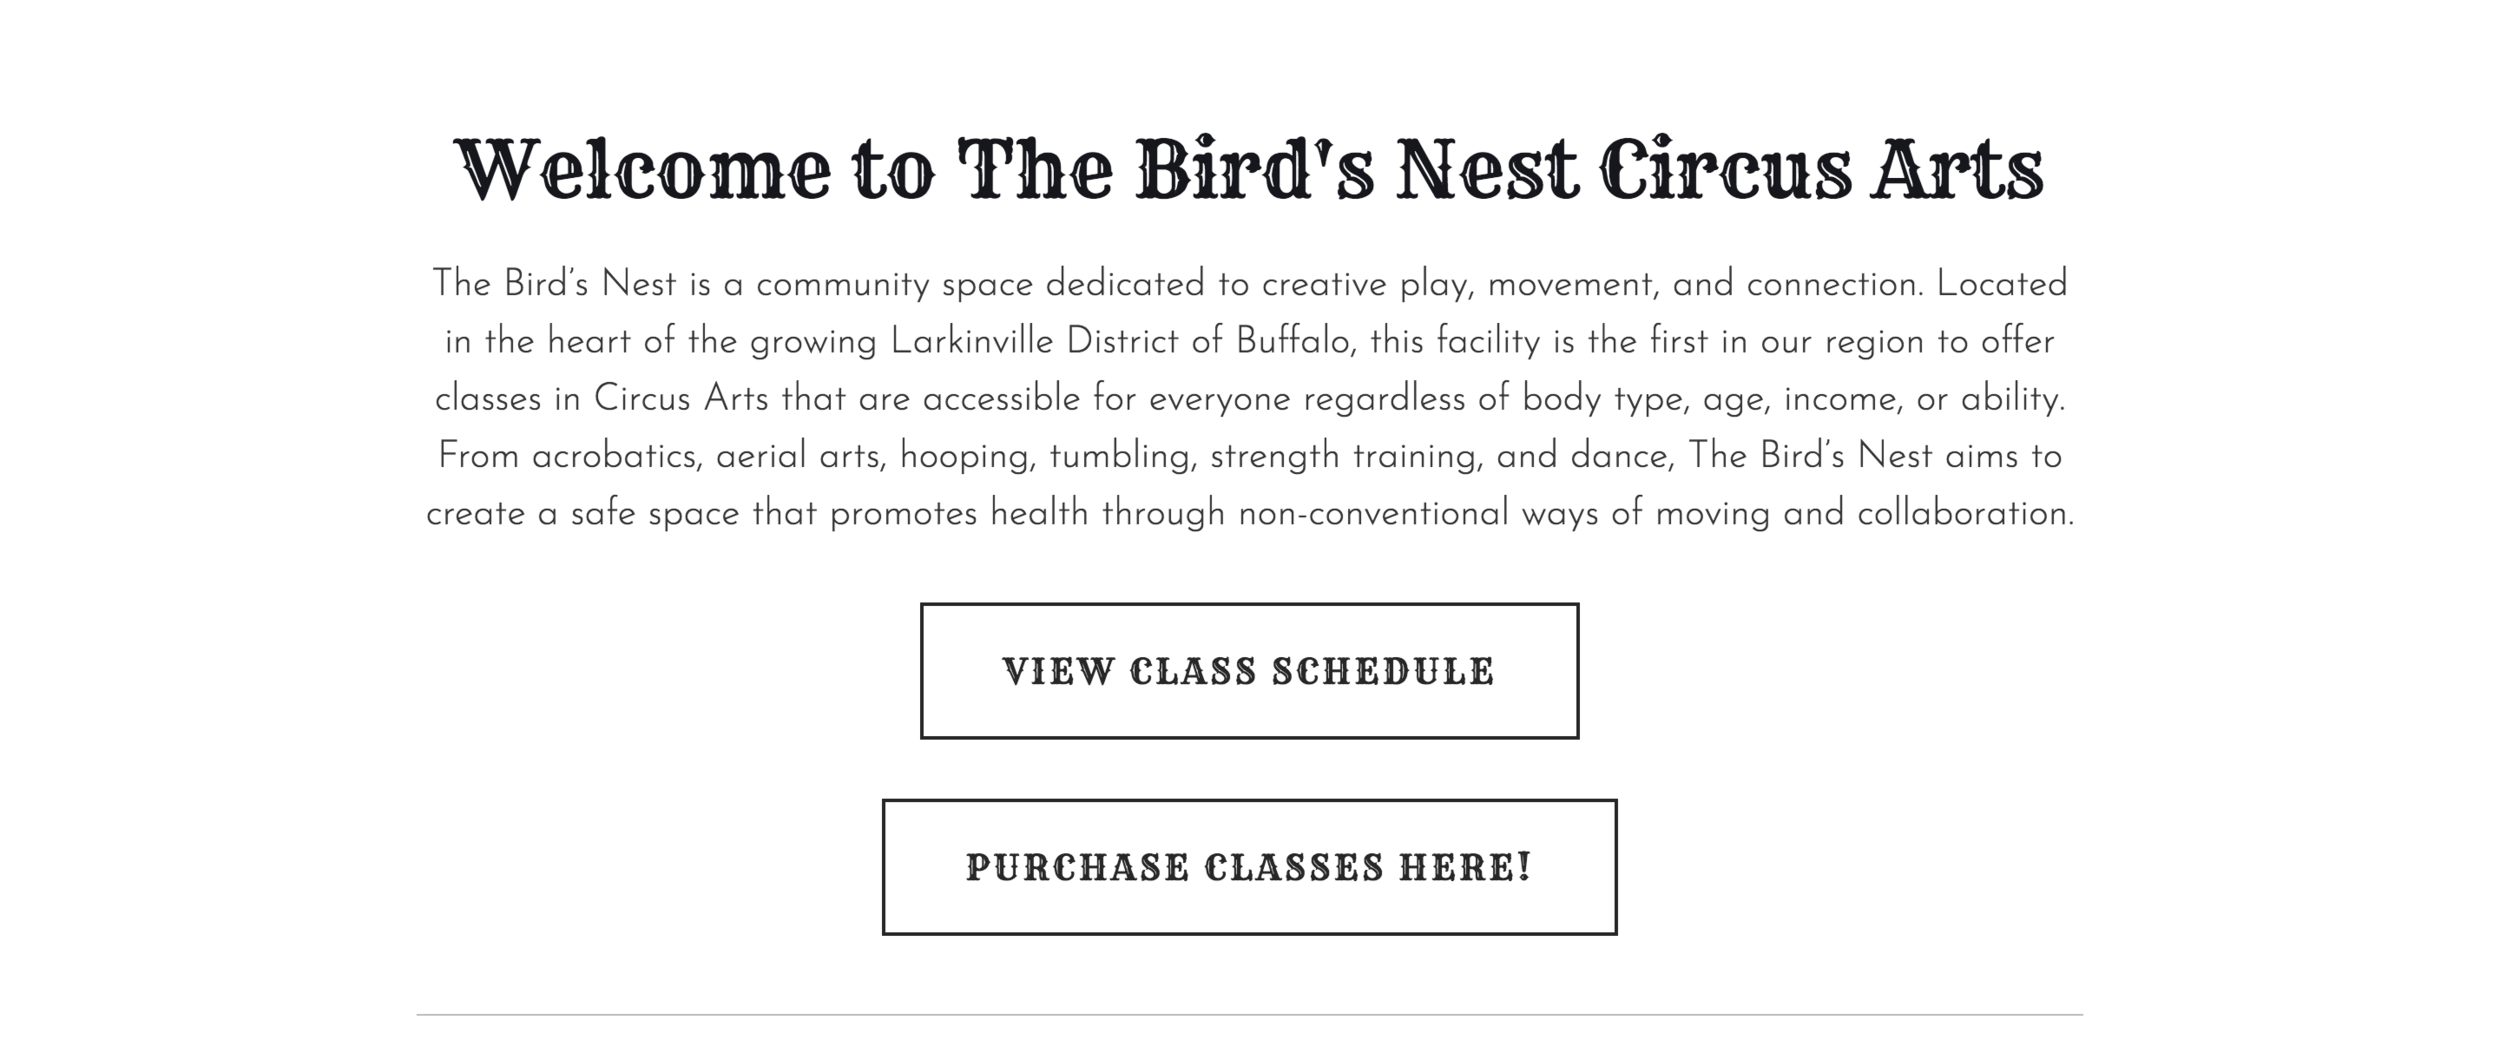 """Landing Page: The Bird's Nest Circus Arts. """"The Bird's Nest is a community space dedicated to creative play, movement, and connection. Located in the heart of the growing Larkinville District of Buffalo, this facility is the first in our region to offer classes in Circus Arts that are accessible for everyone regardless of body type, age, income, or ability. From acrobatics, aerial arts, hooping, tumbling, strength training, and dance, The Bird's Nest aims to create a safe space that promotes health through non-conventional ways of moving and collaboration."""" Button 1: """"VIEW CLASS SCHEDULE."""" Button 2: """"PURCHASE CLASSES HERE!"""""""